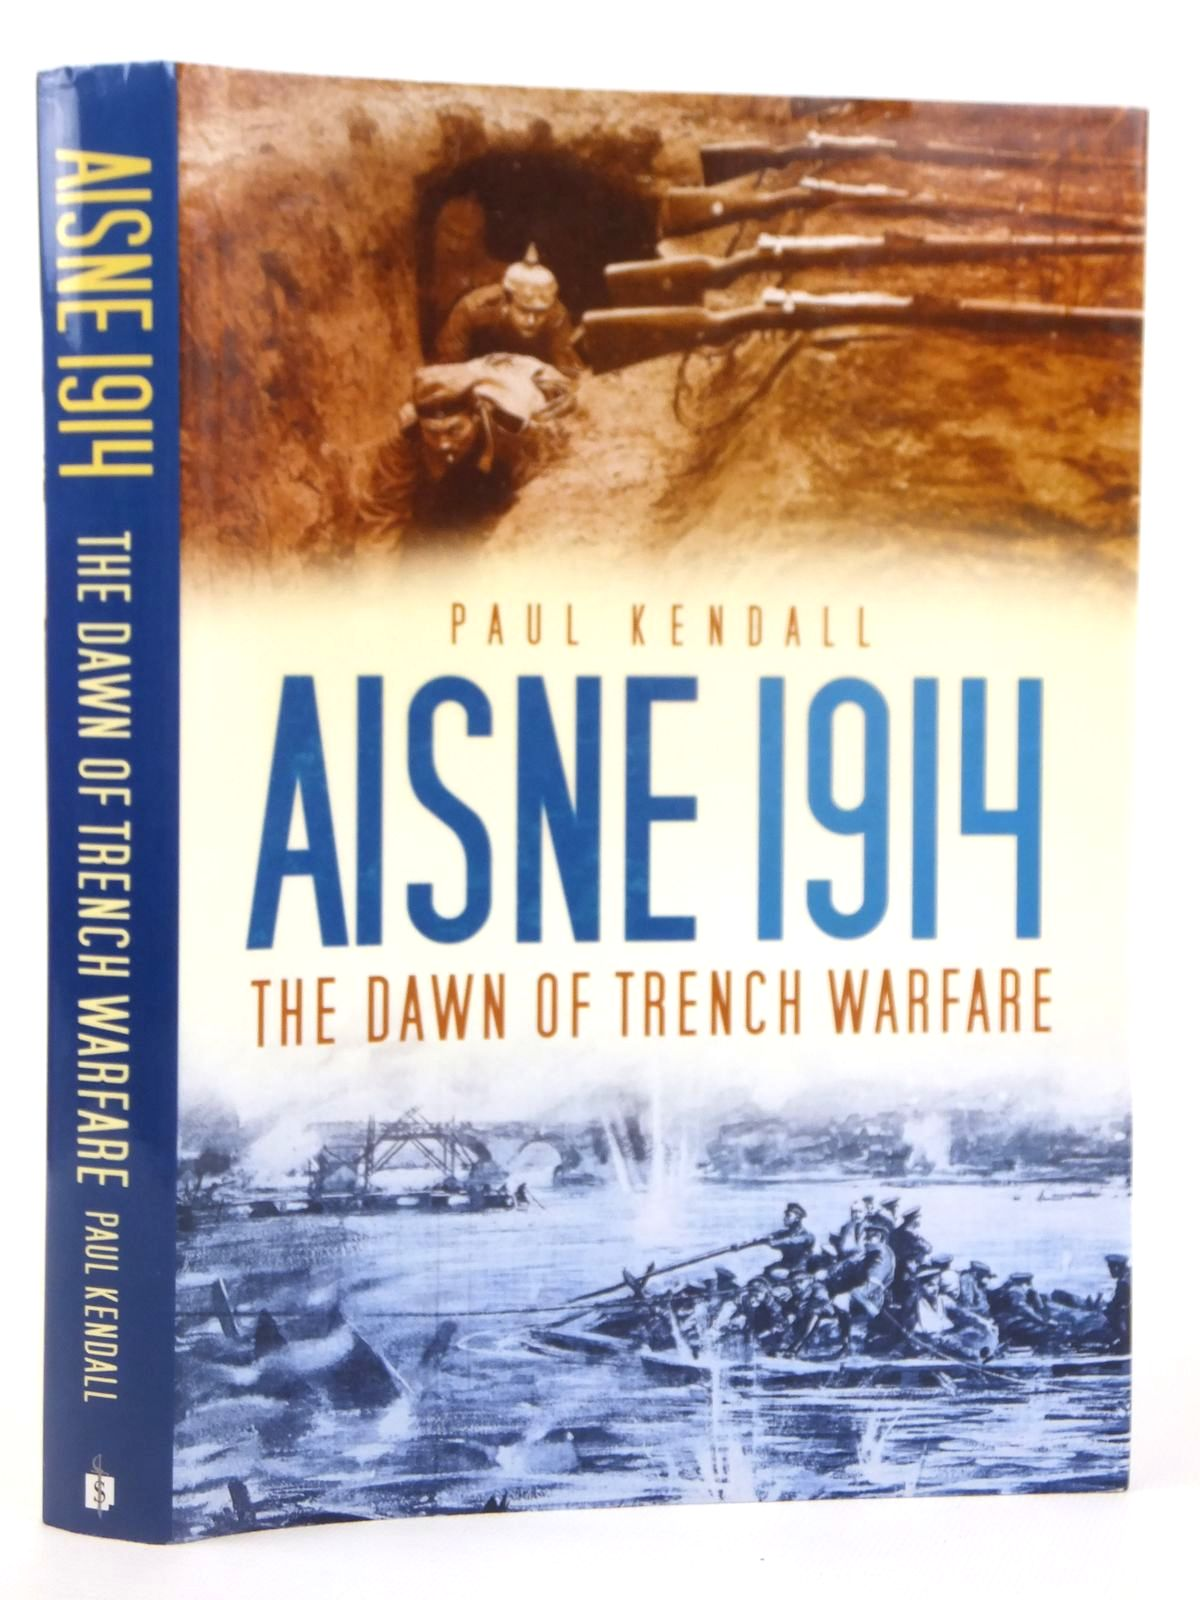 Photo of AISNE 1914 THE DAWN OF TRENCH WARFARE written by Kendall, Paul published by Spellmount Publishers (STOCK CODE: 1608835)  for sale by Stella & Rose's Books